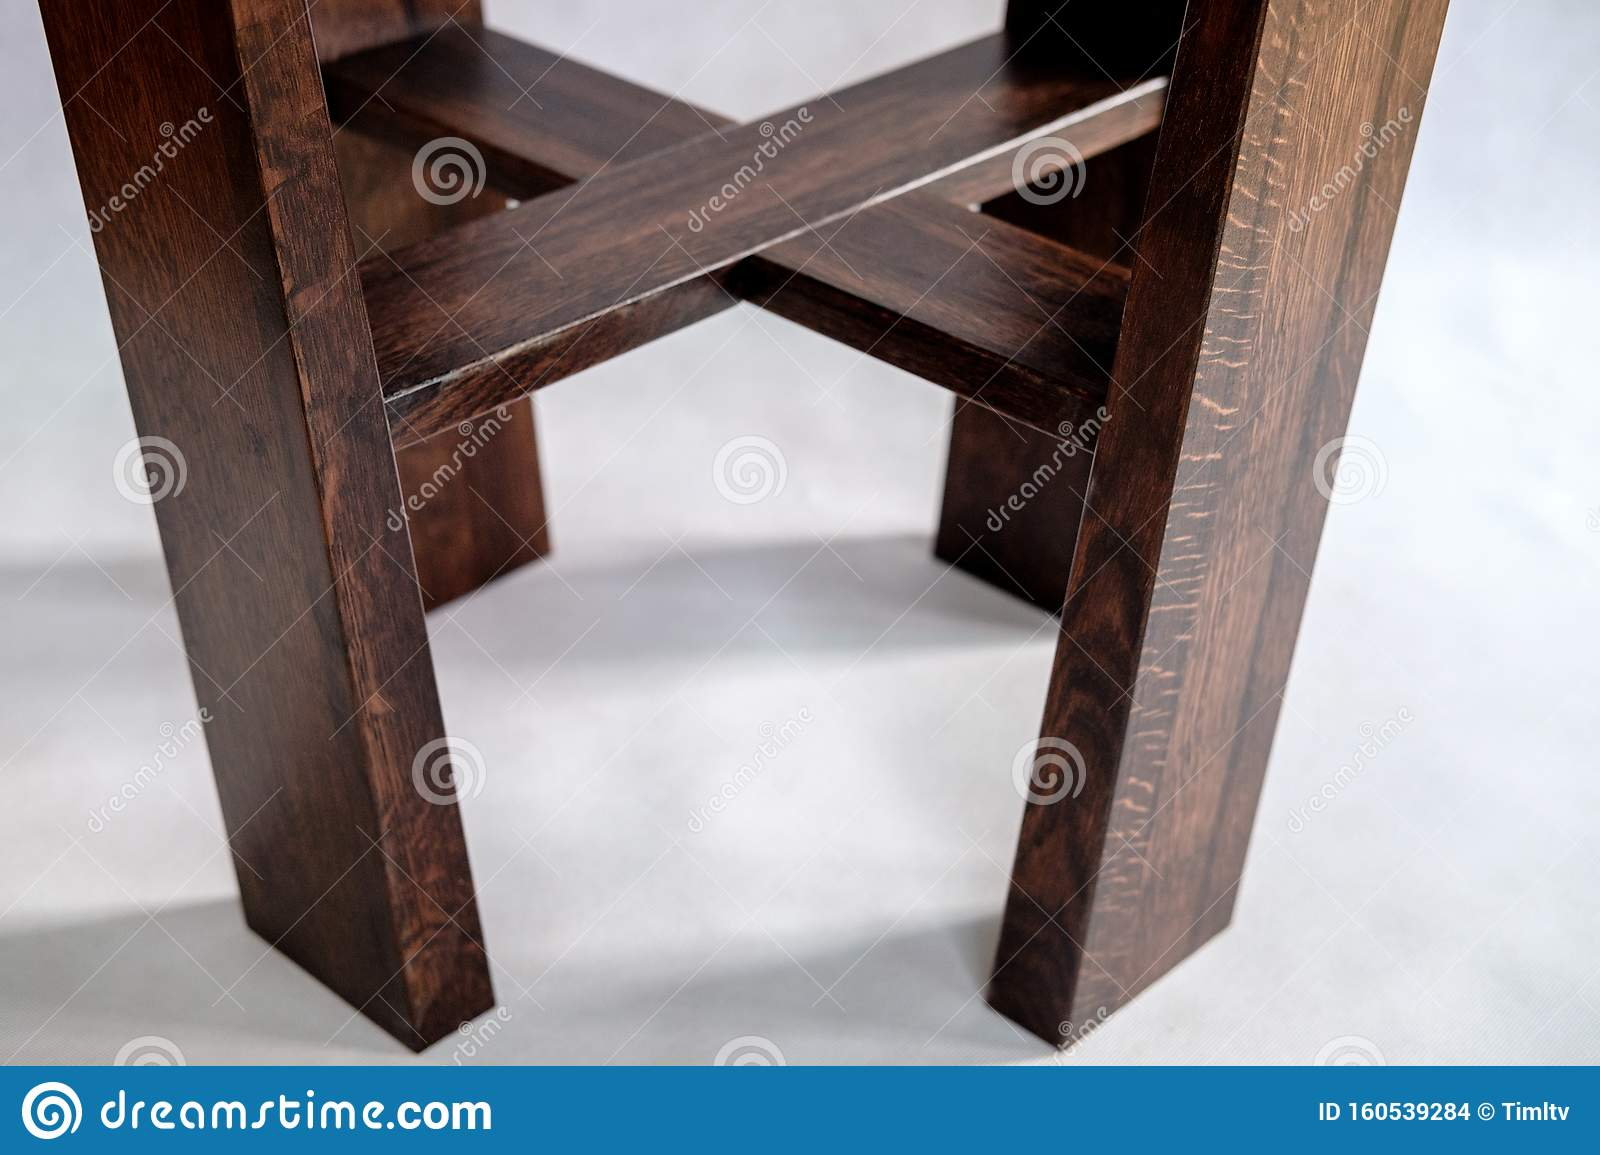 Picture of: Wooden Coffee Table With Acrylic Table Top On White Background Close Up Stock Photo Image Of Material Board 160539284